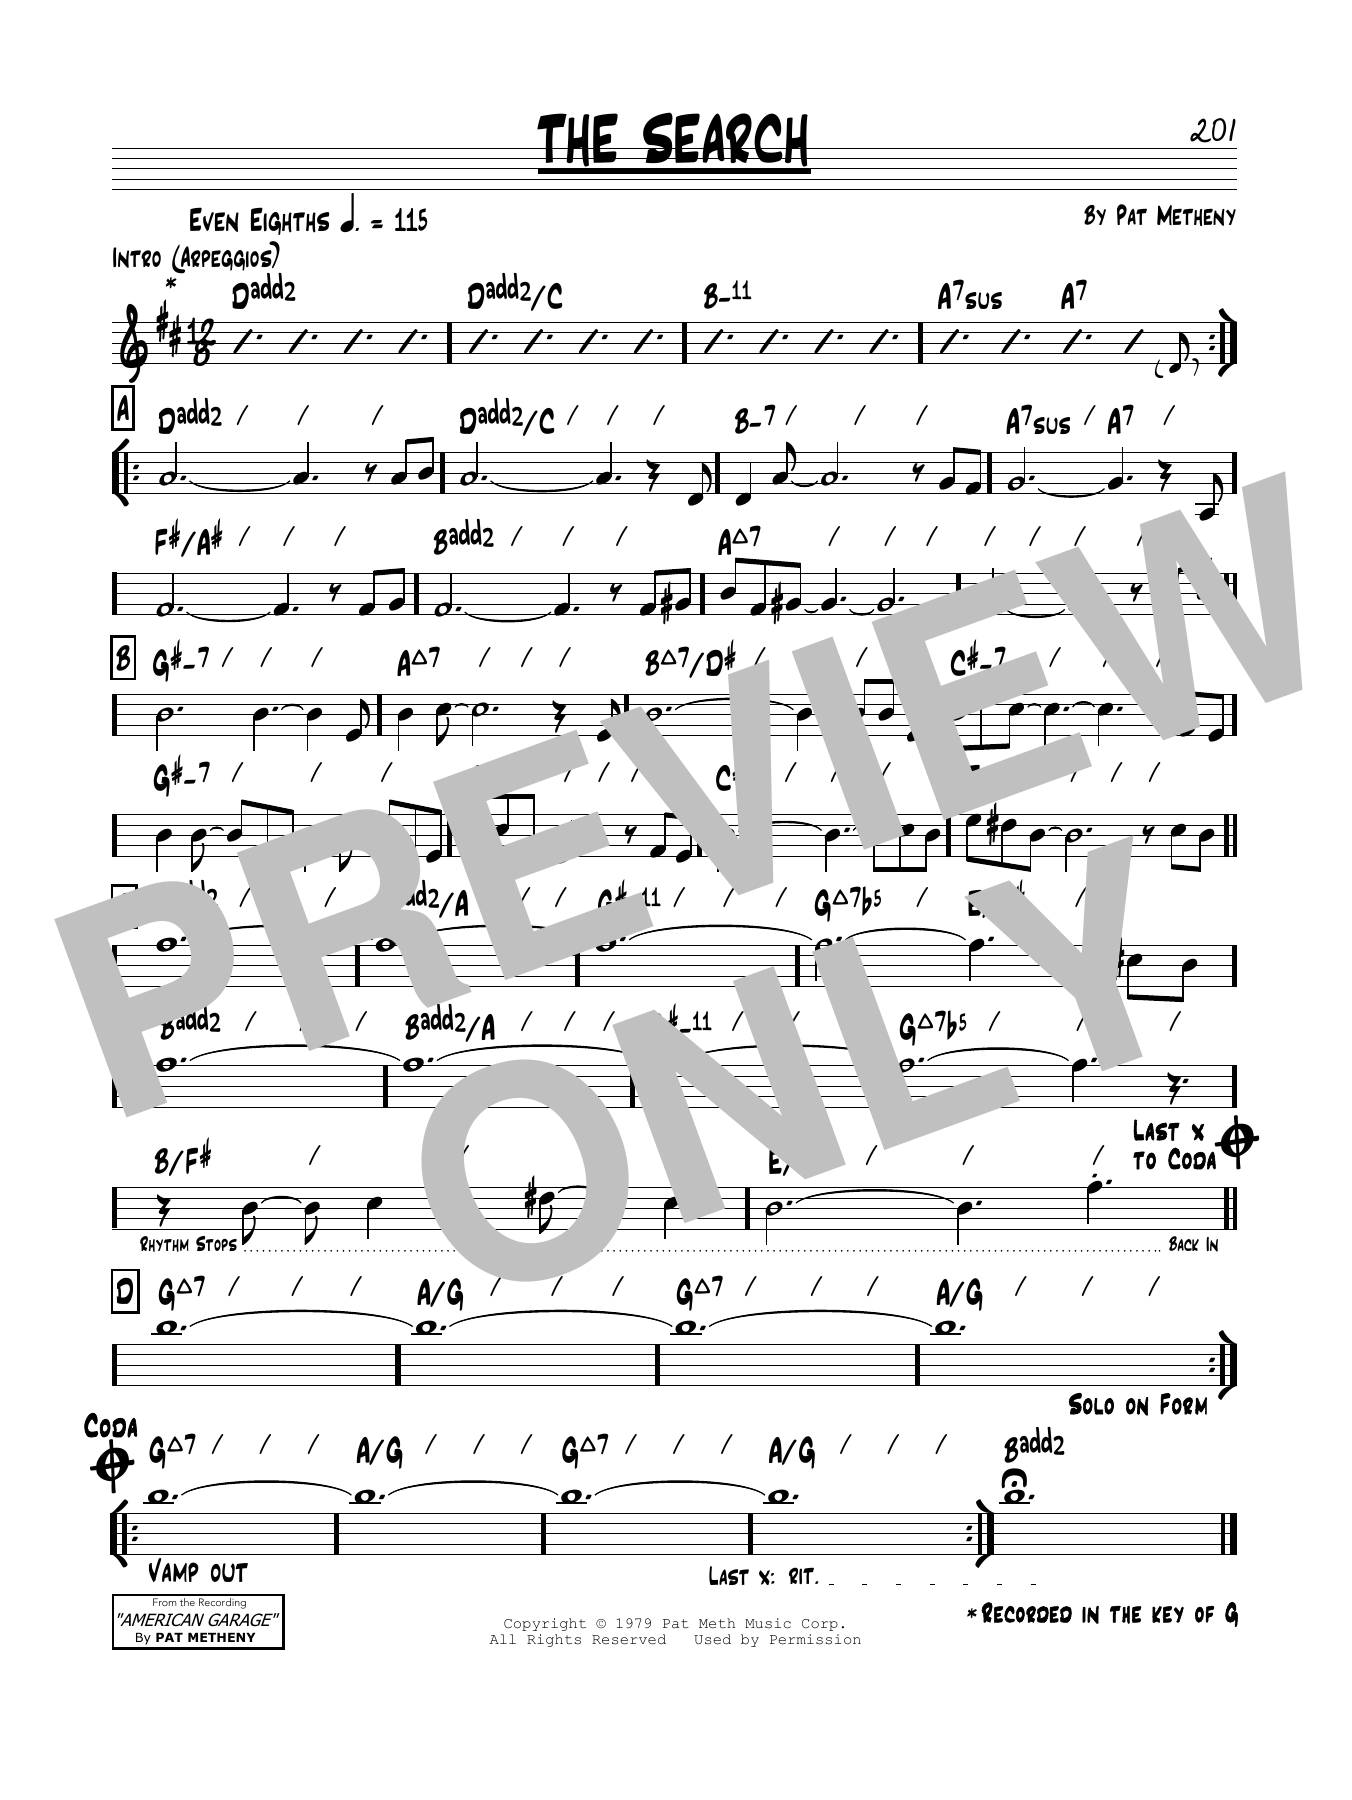 Pat Metheny The Search sheet music notes and chords. Download Printable PDF.